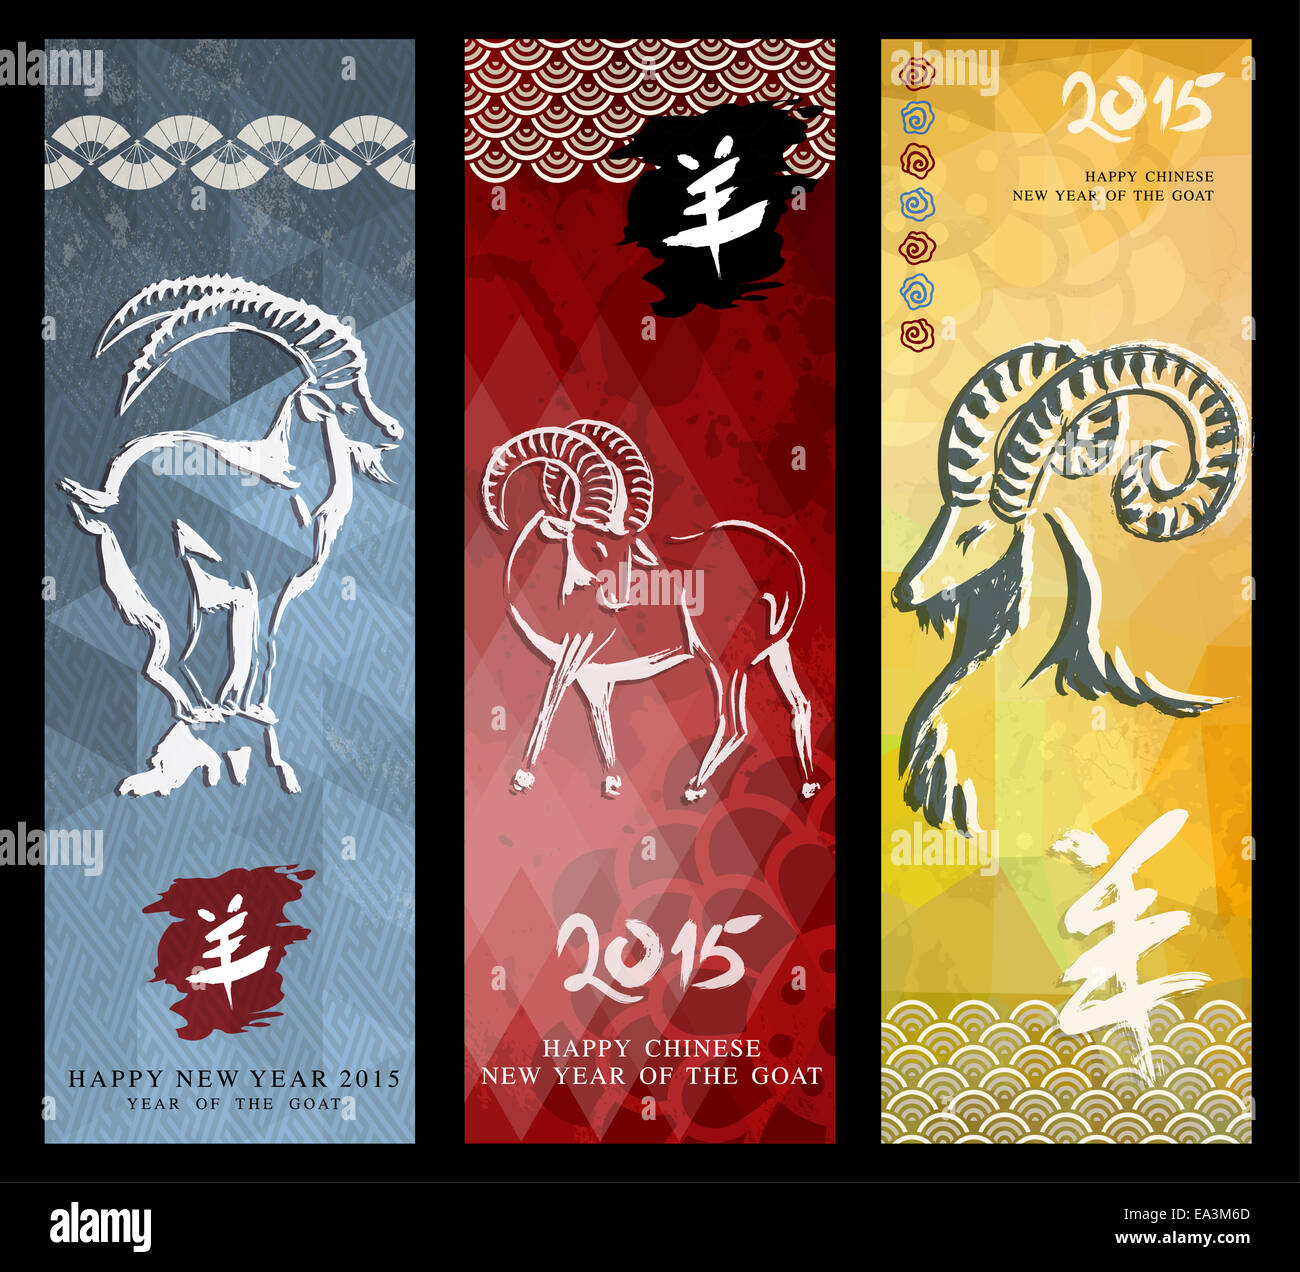 Happy 2015 chinese new year of the goat greeting card geometric happy 2015 chinese new year of the goat greeting card geometric style banner background set kristyandbryce Choice Image